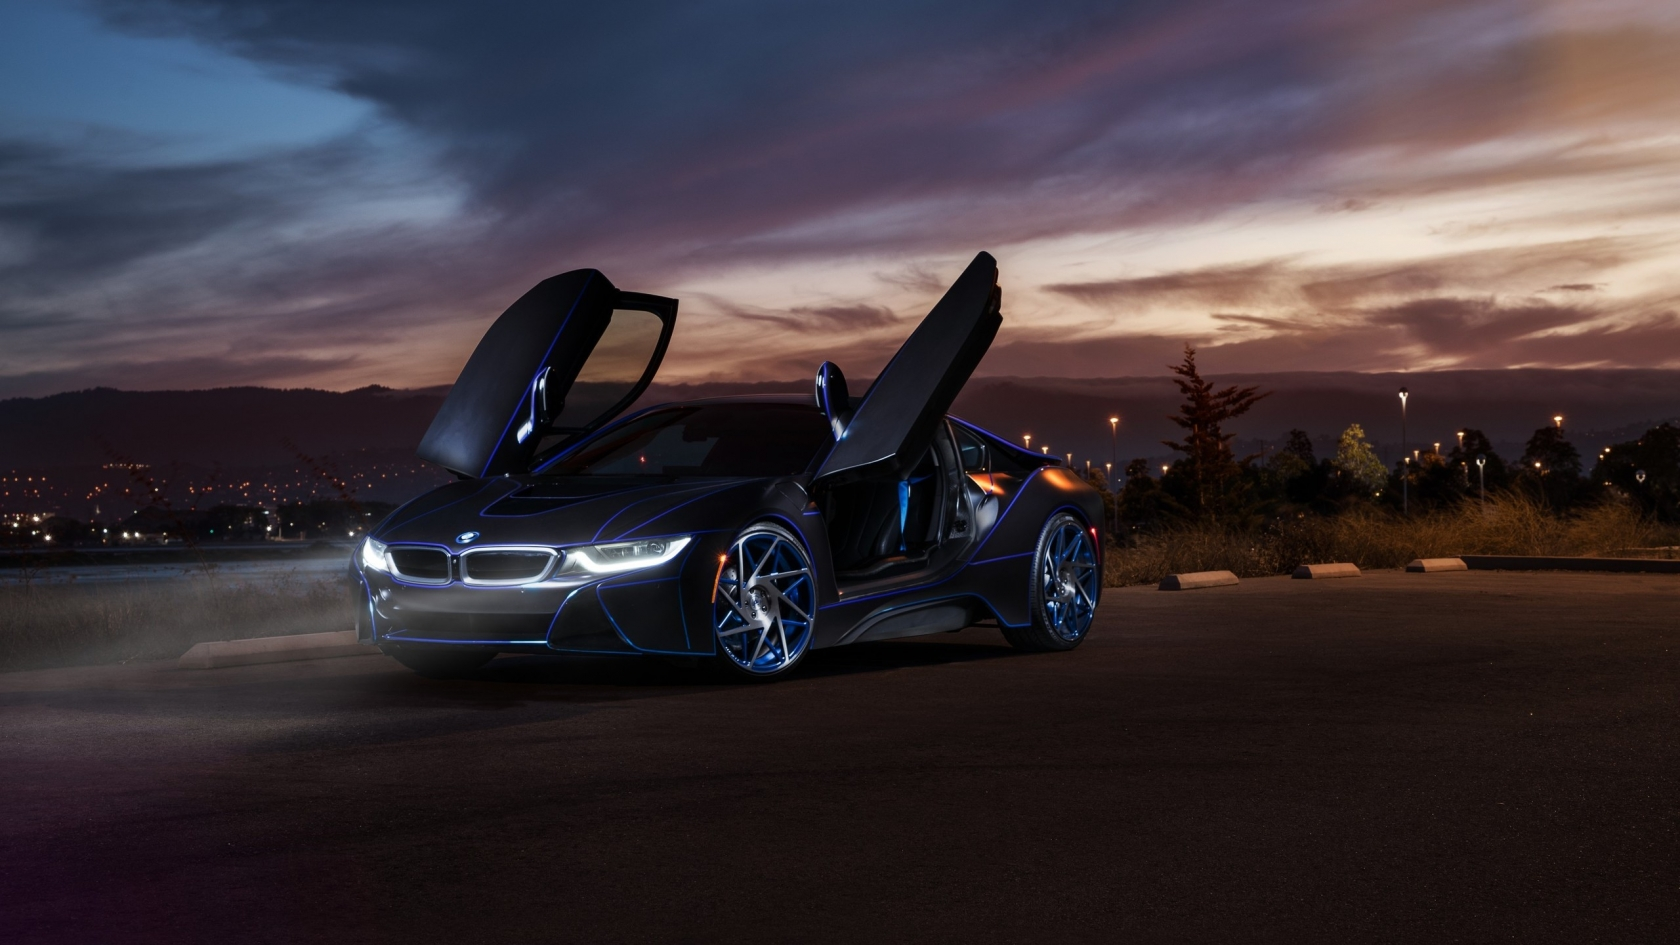 Gorgeous New BMW i8 for 1680 x 945 HDTV resolution